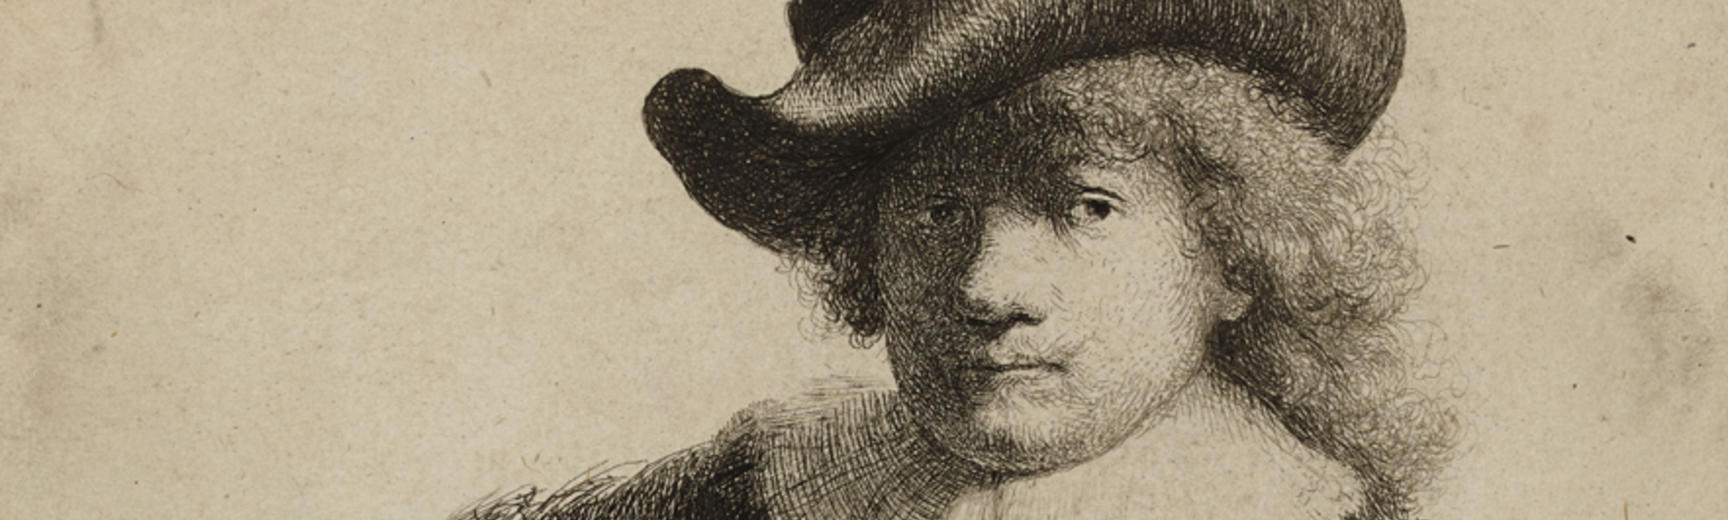 2020 Young Rembrandt Exhibition – Rembrandt, Self-portrait in a soft hat and a patterned cloak, 1631 © British Museum, London